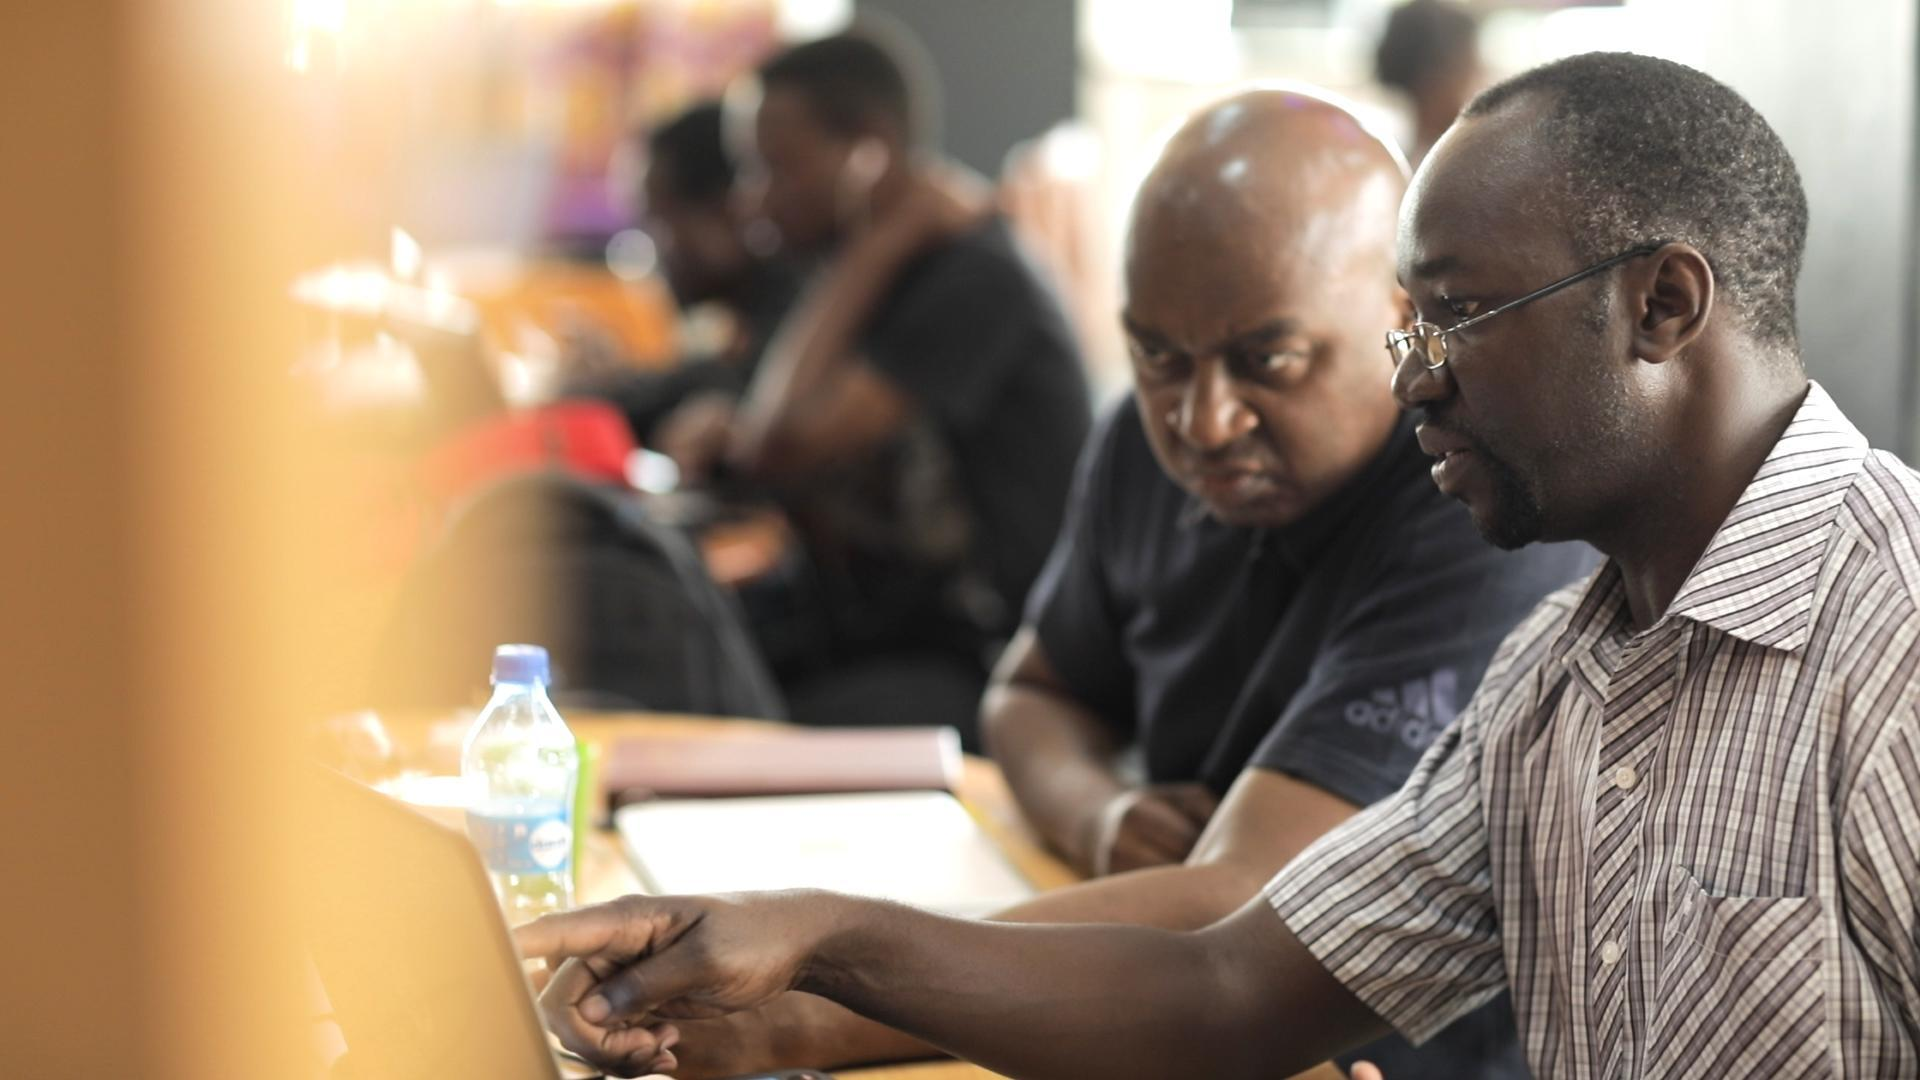 NaiLab helps African startups launch and scale